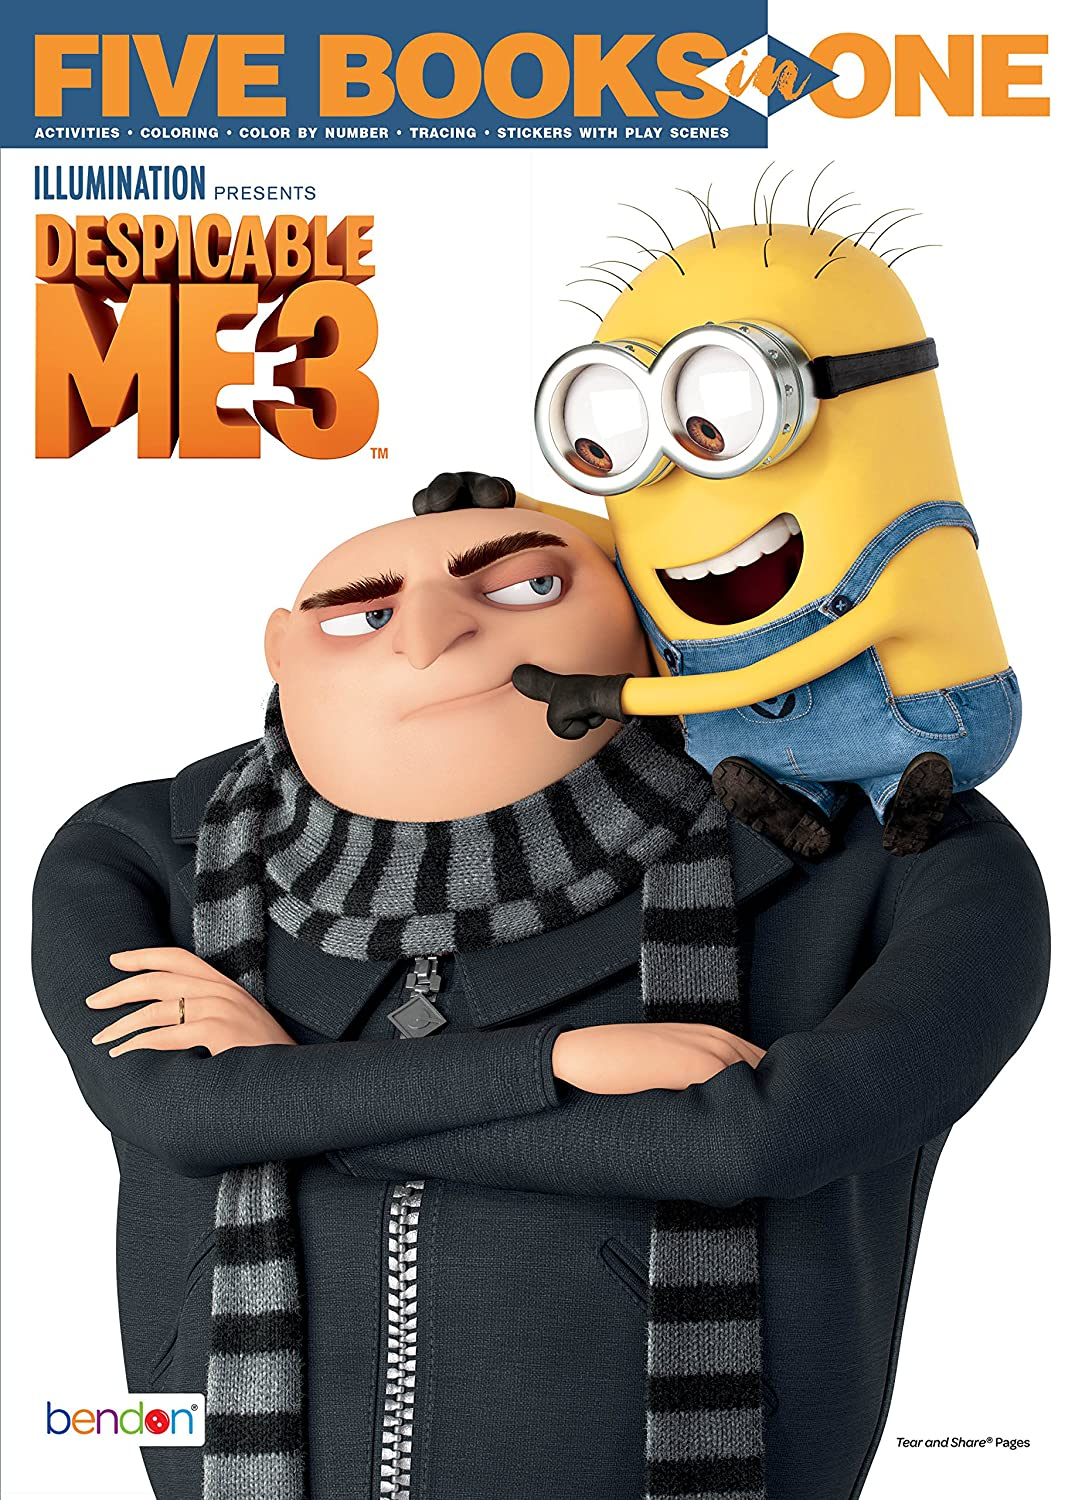 Despicable Me Bendon 41958 3 5-in-1 Coloring and Activity Book